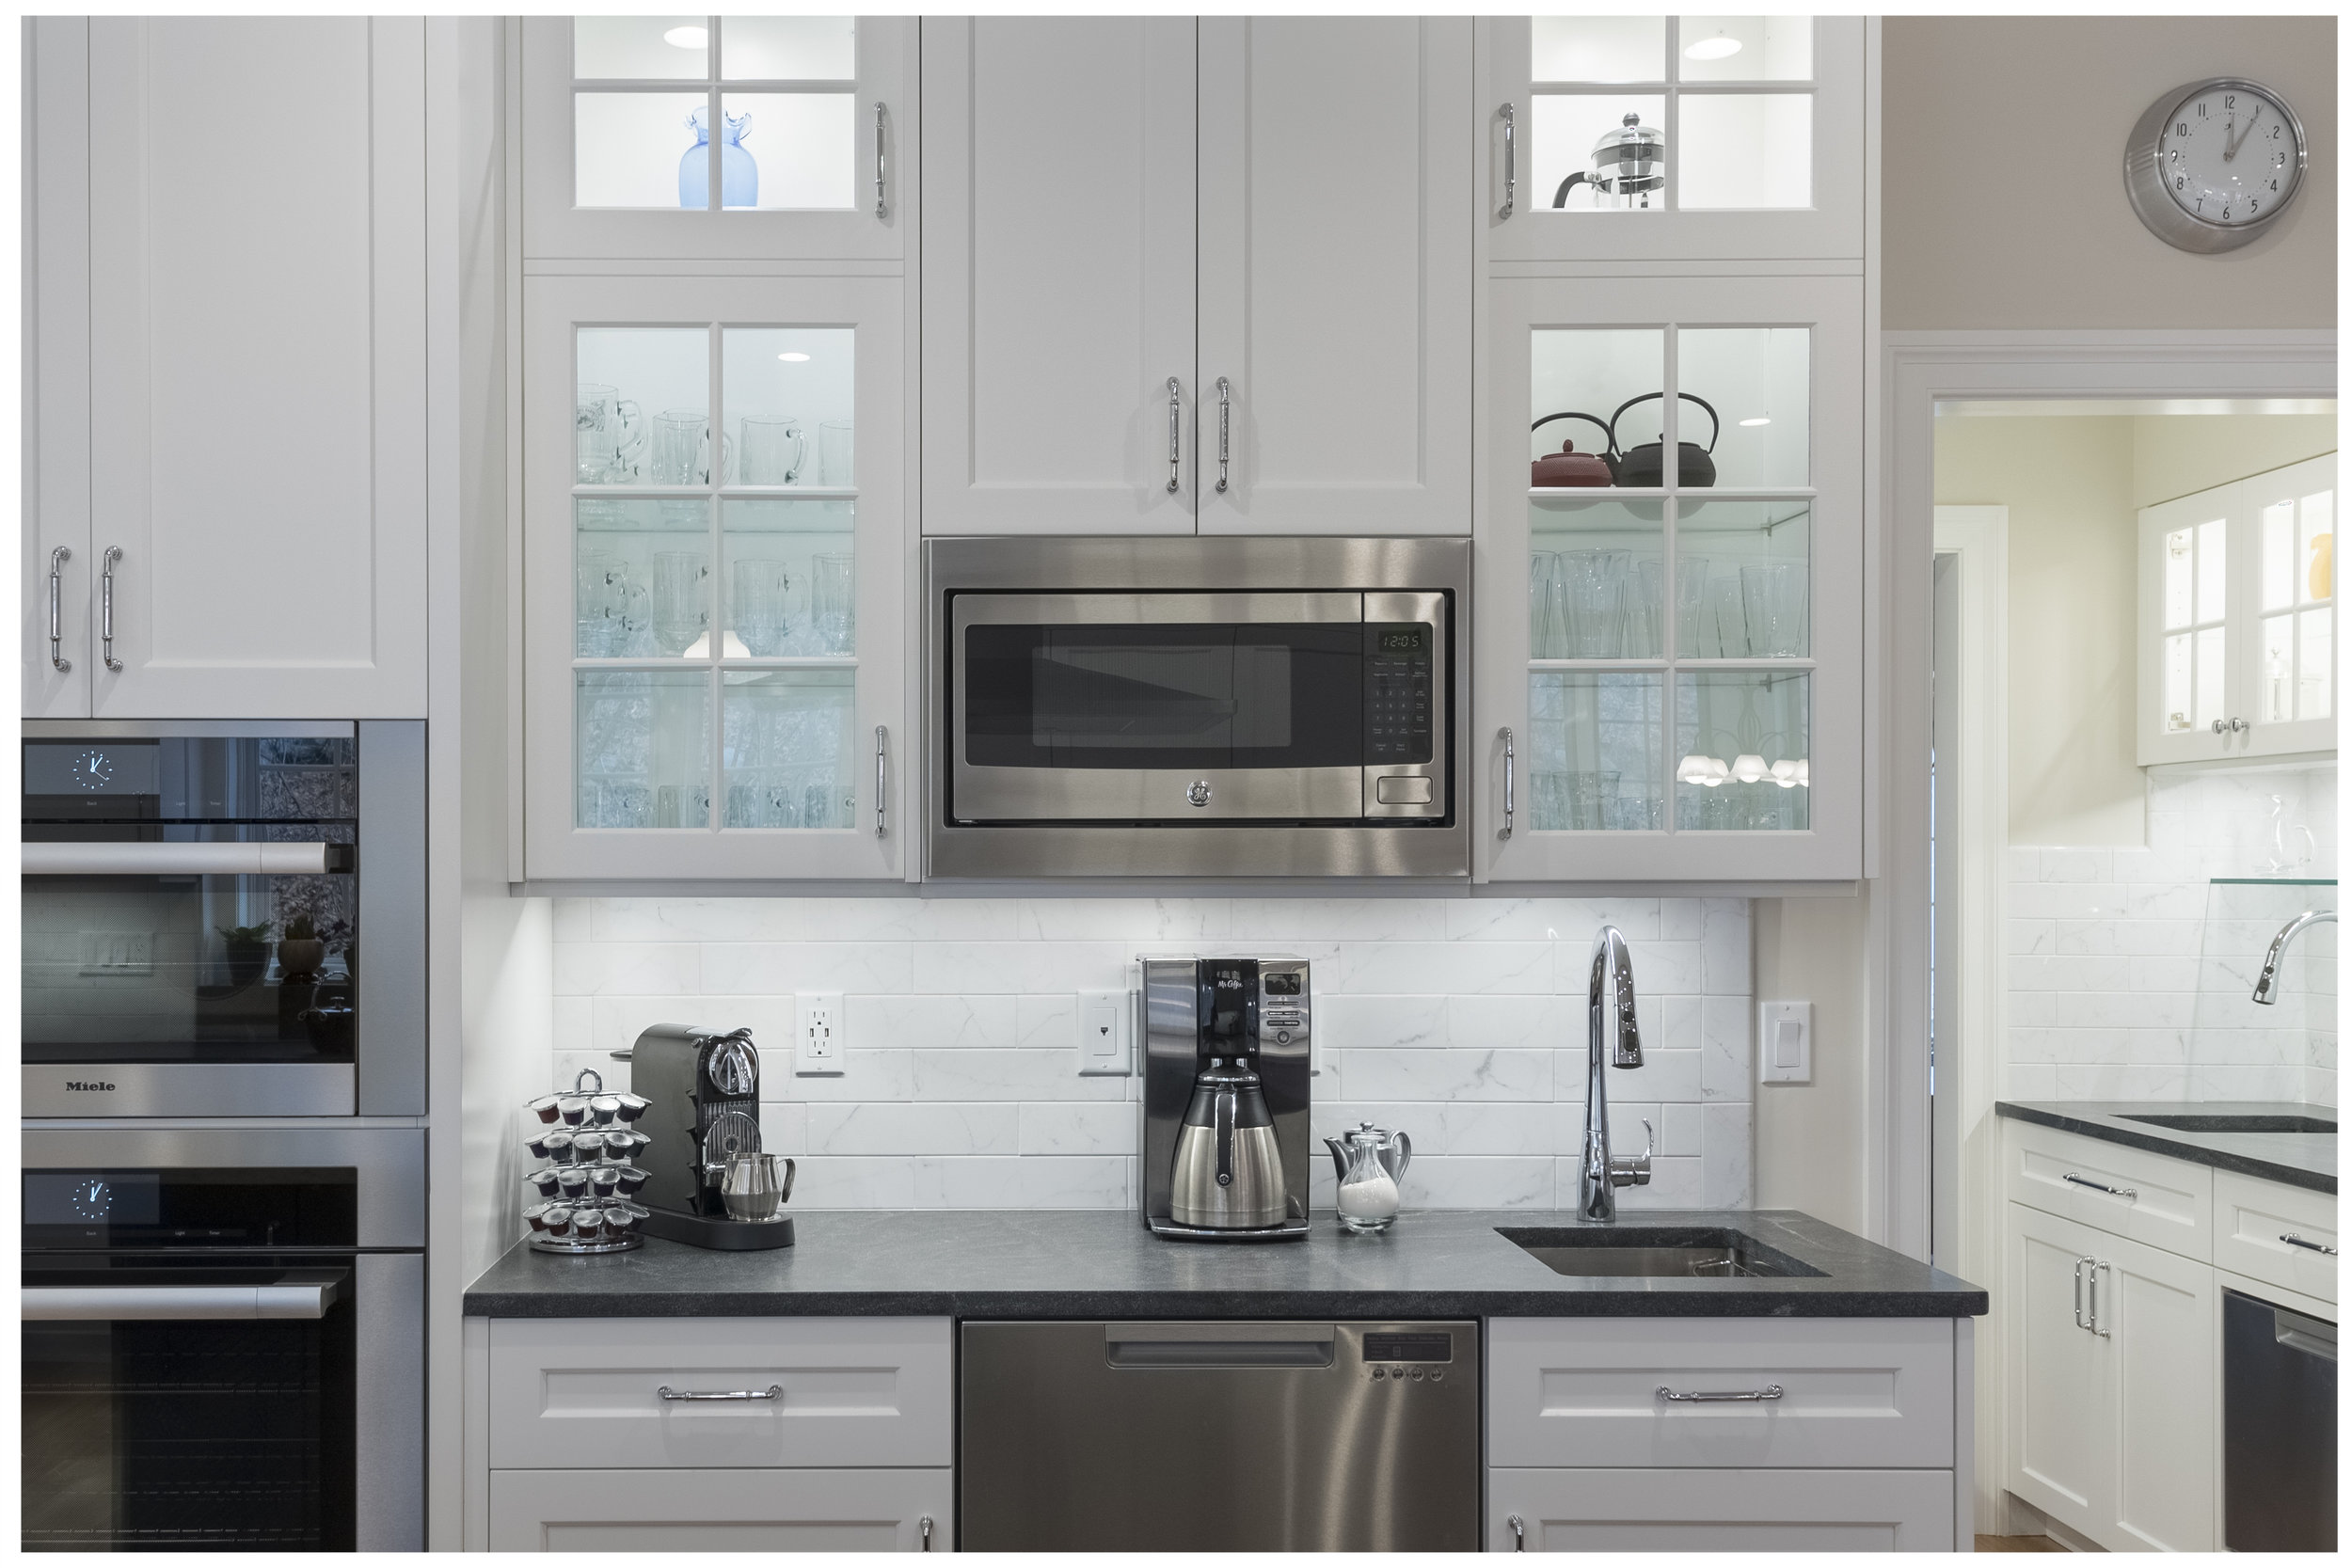 KitchenVisions-Transitional-Kitchen-Acton-020.jpg